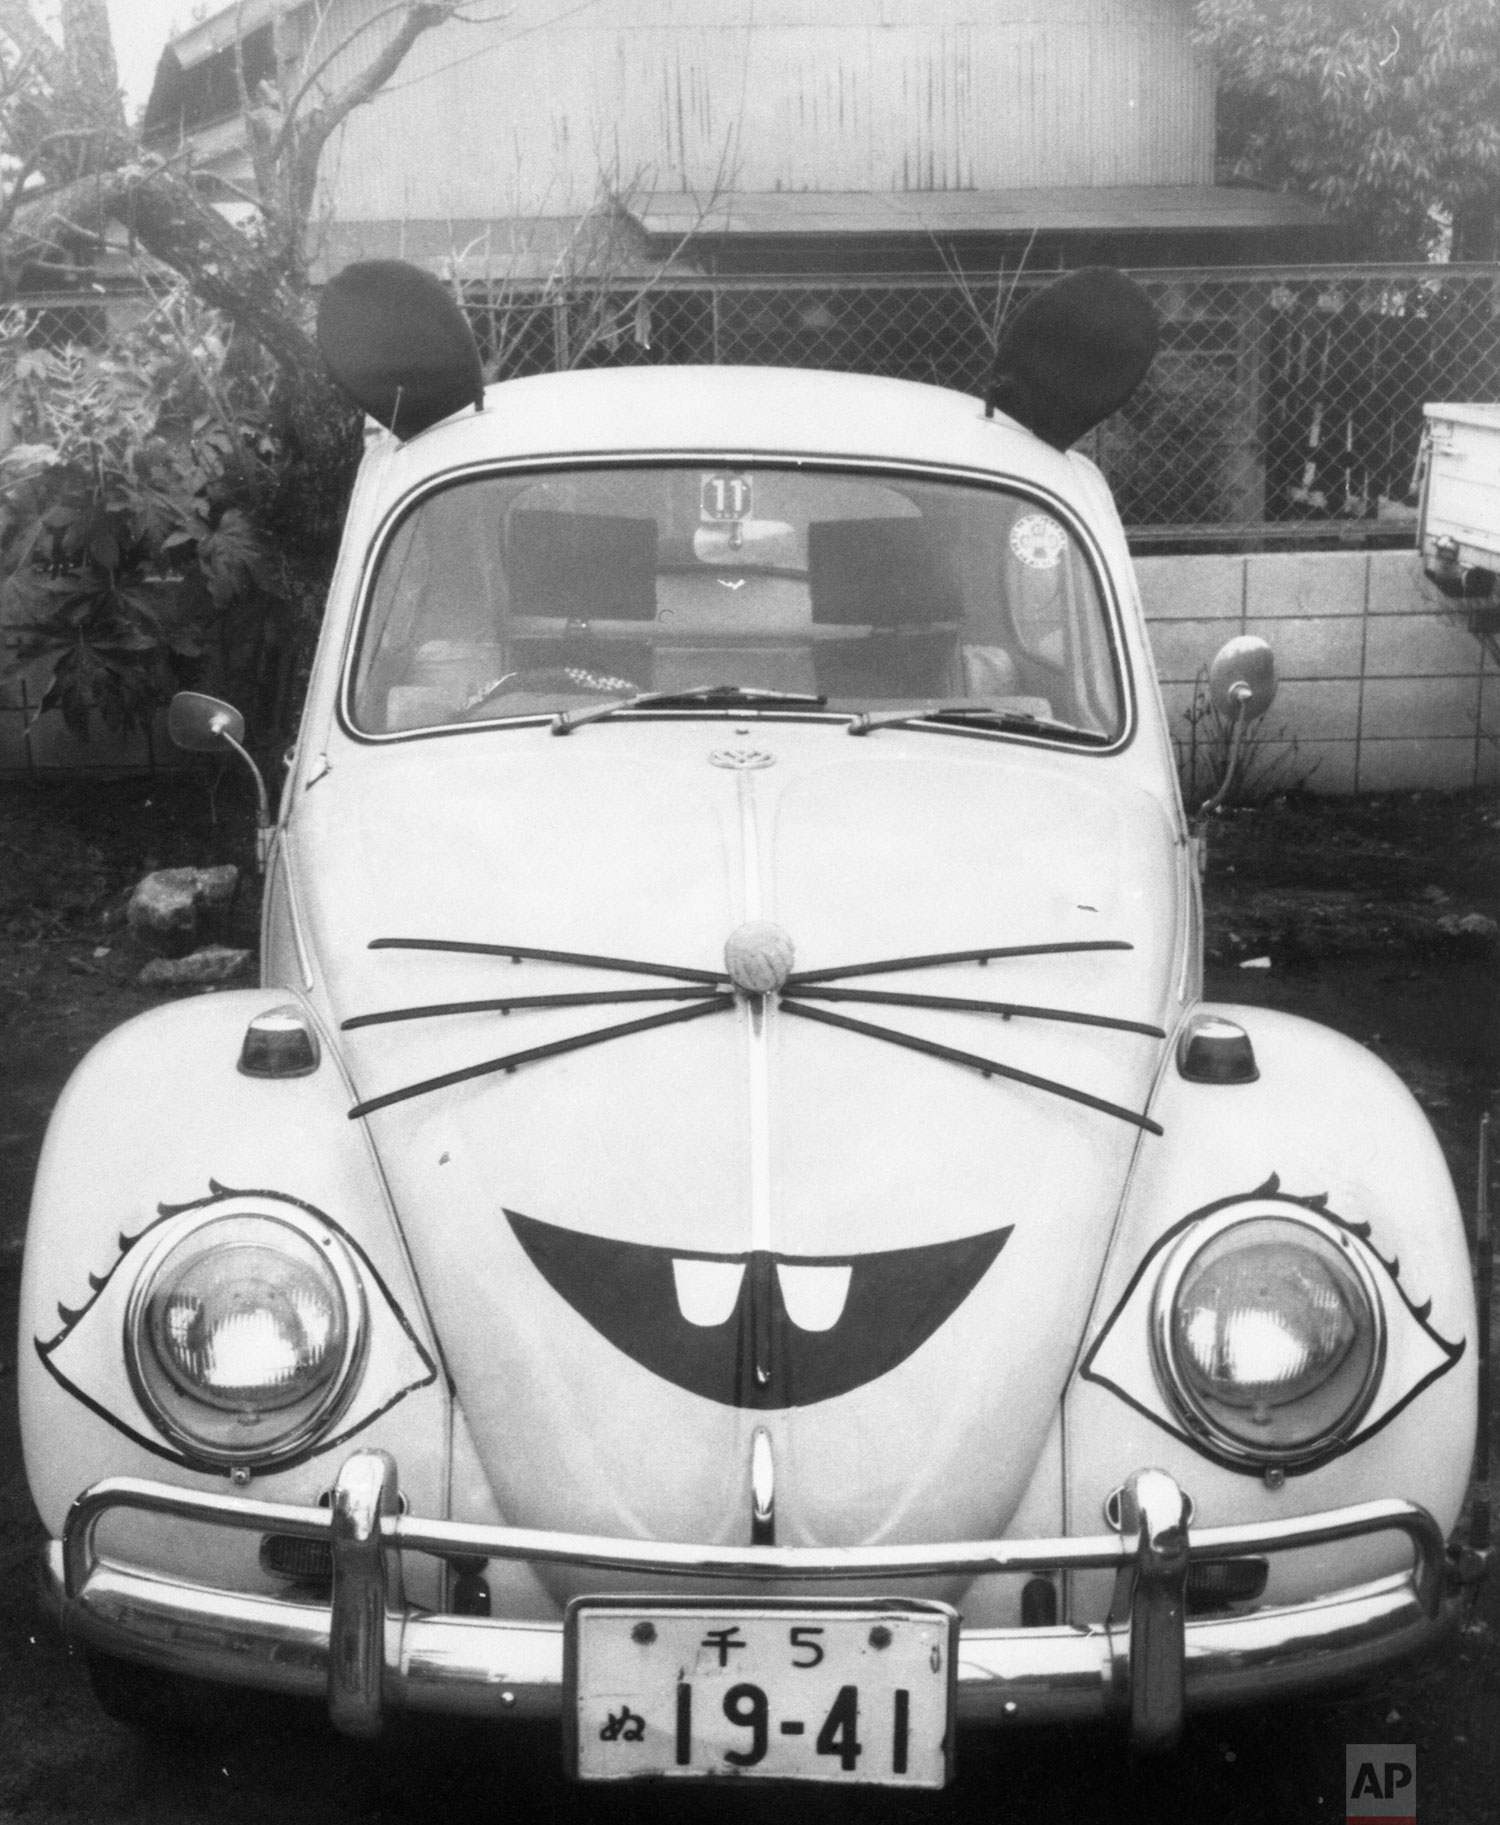 A Volkswagen Beetle with a mouse design which belongs to an exterminating company in Tokyo, Japan shown around Jan. 10, 1972. (AP Photo)